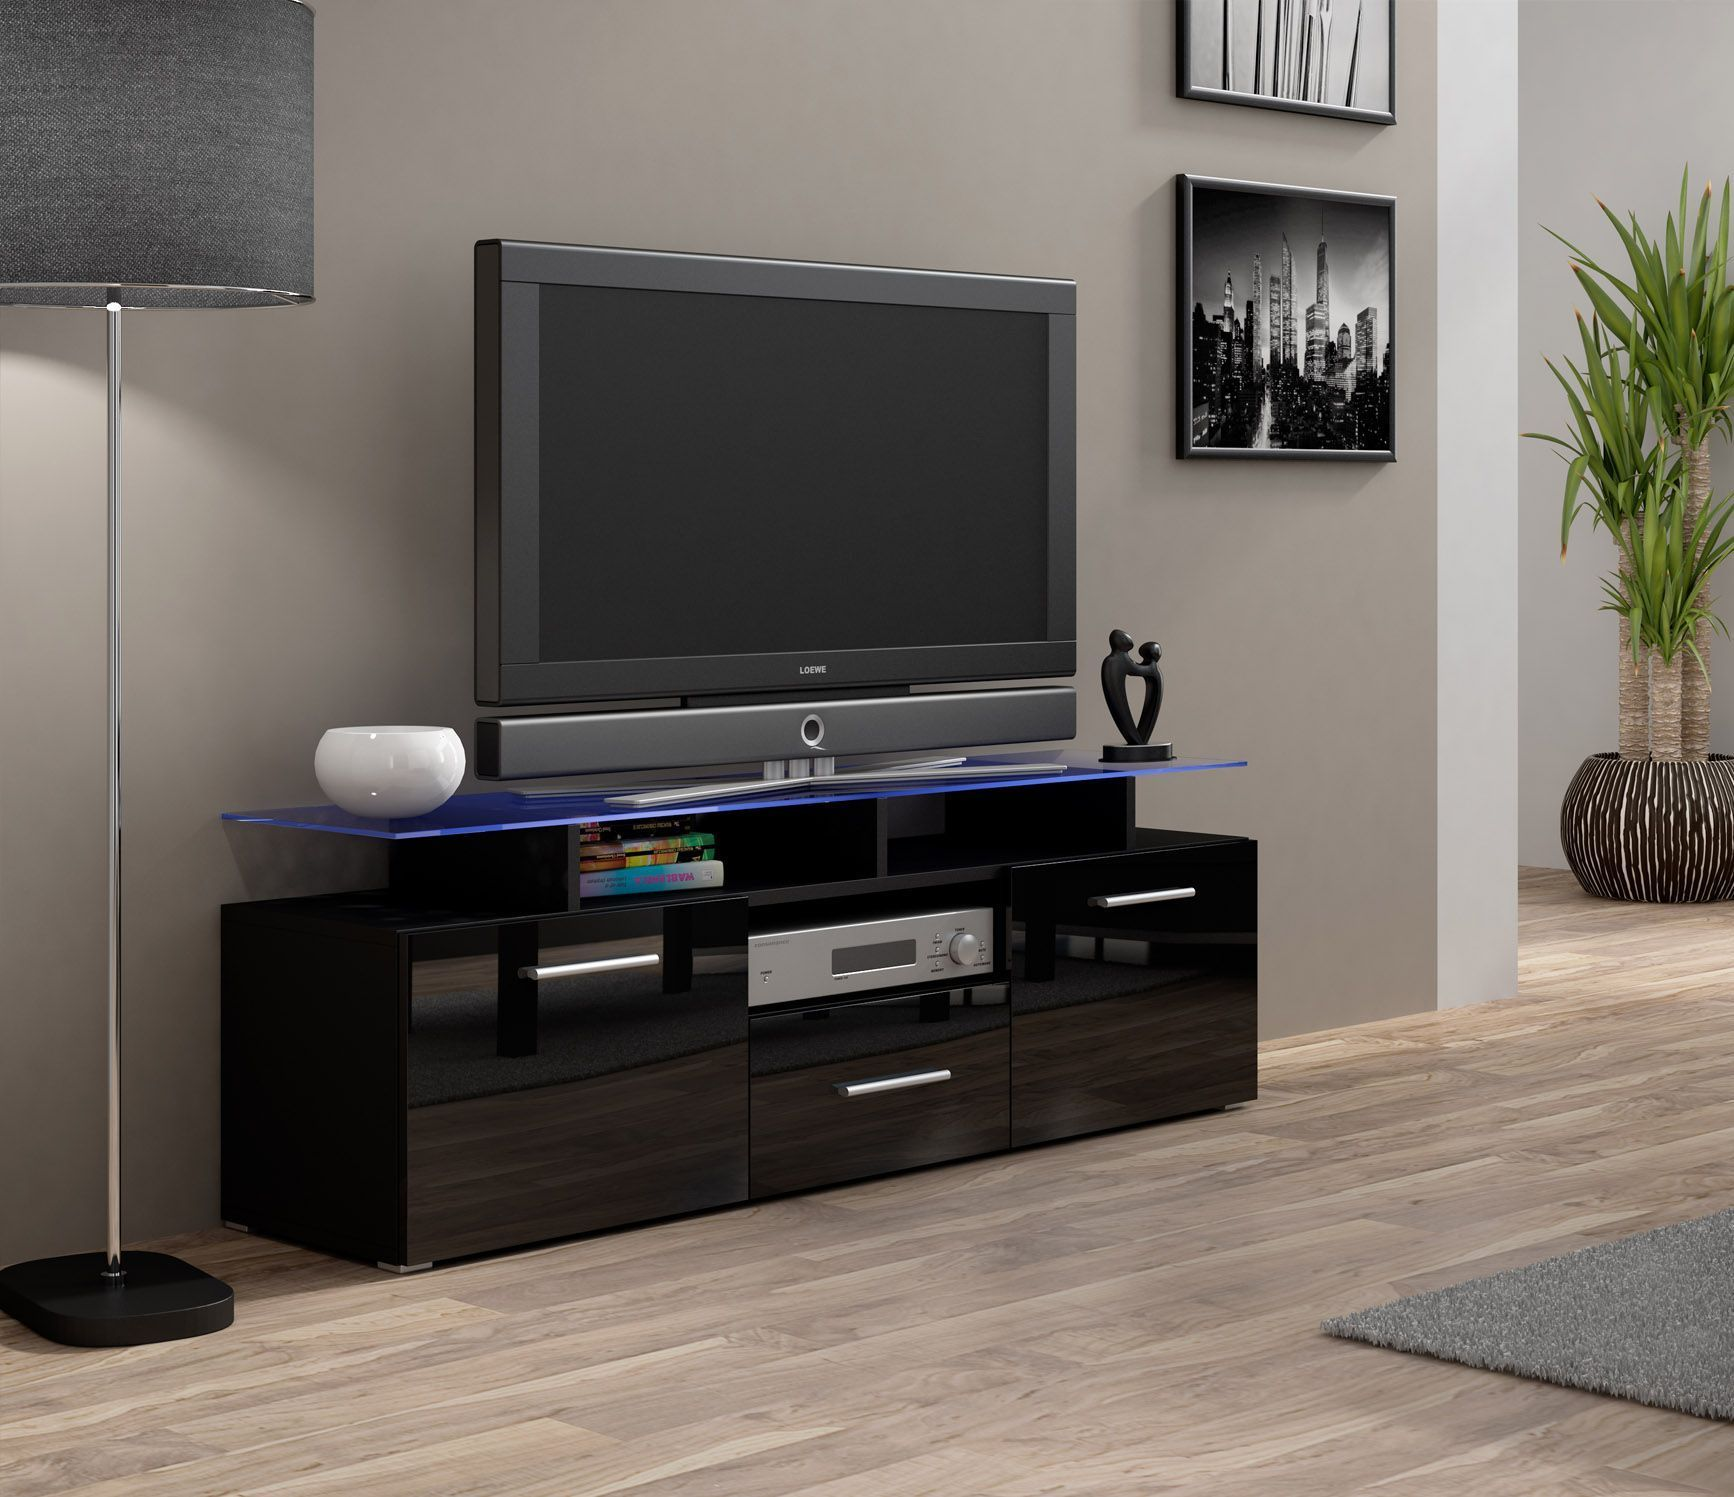 Tv Meubel En Kast.Pin On Meubeldecor